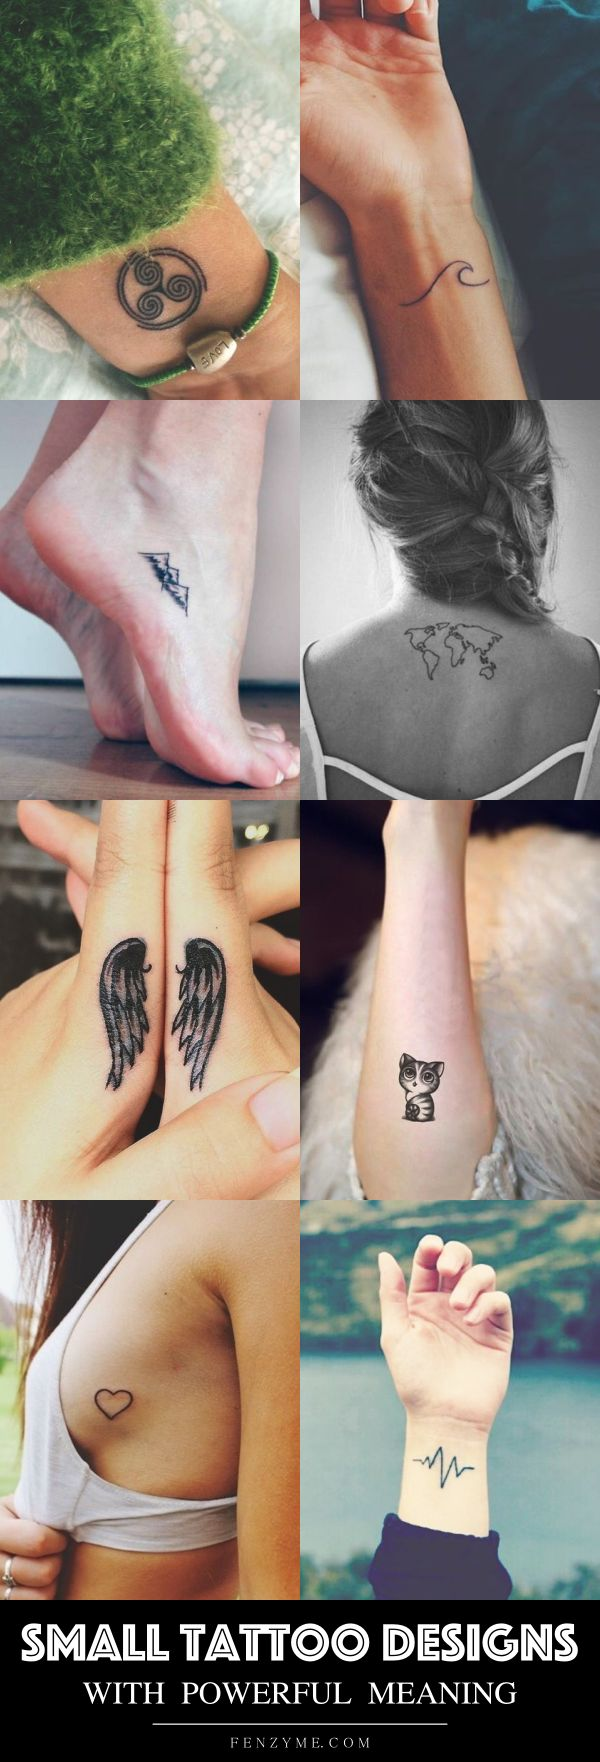 Small wrist tattoos design ideas to make you jealous ecstasycoffee - 65 Small Tattoo Designs With Powerful Meaning